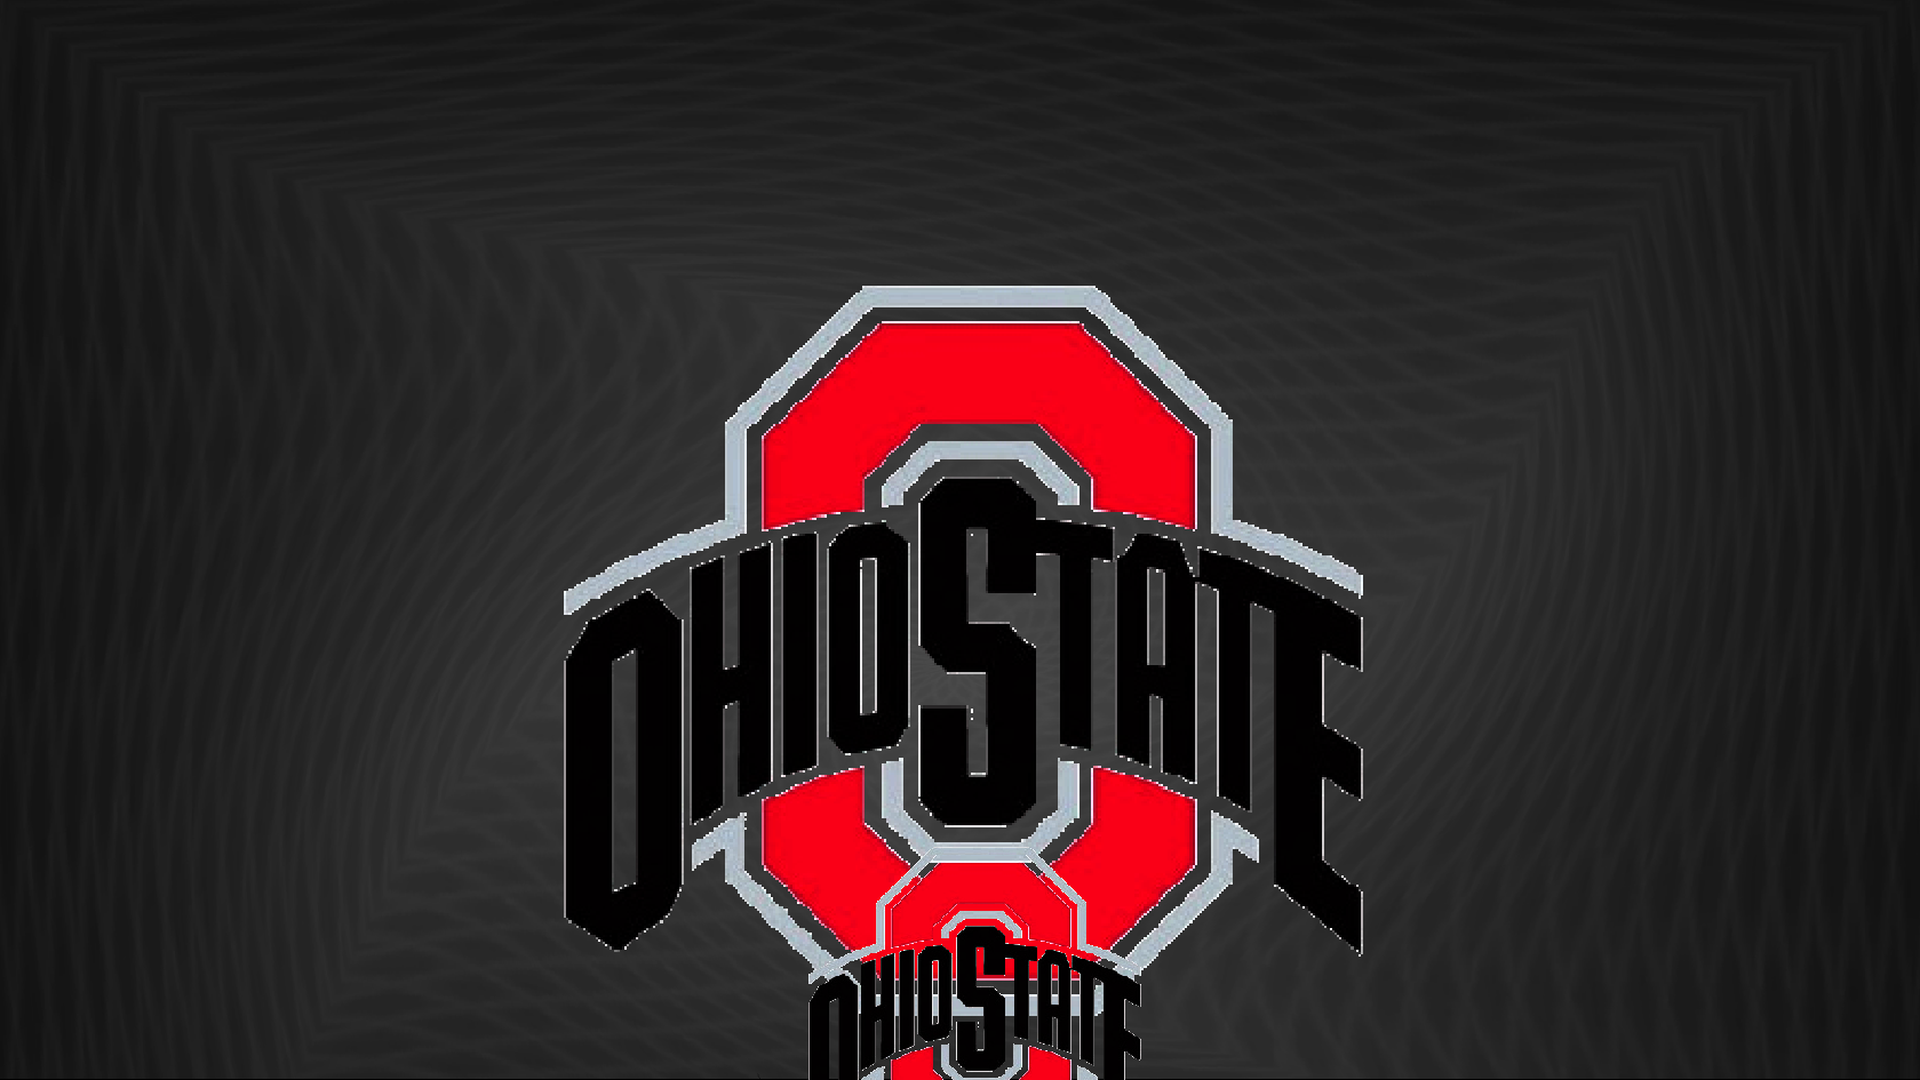 Ohio state buckeyes images athletic logo 6 hd wallpaper and ohio state buckeyes images athletic logo 6 hd wallpaper and background photos voltagebd Gallery